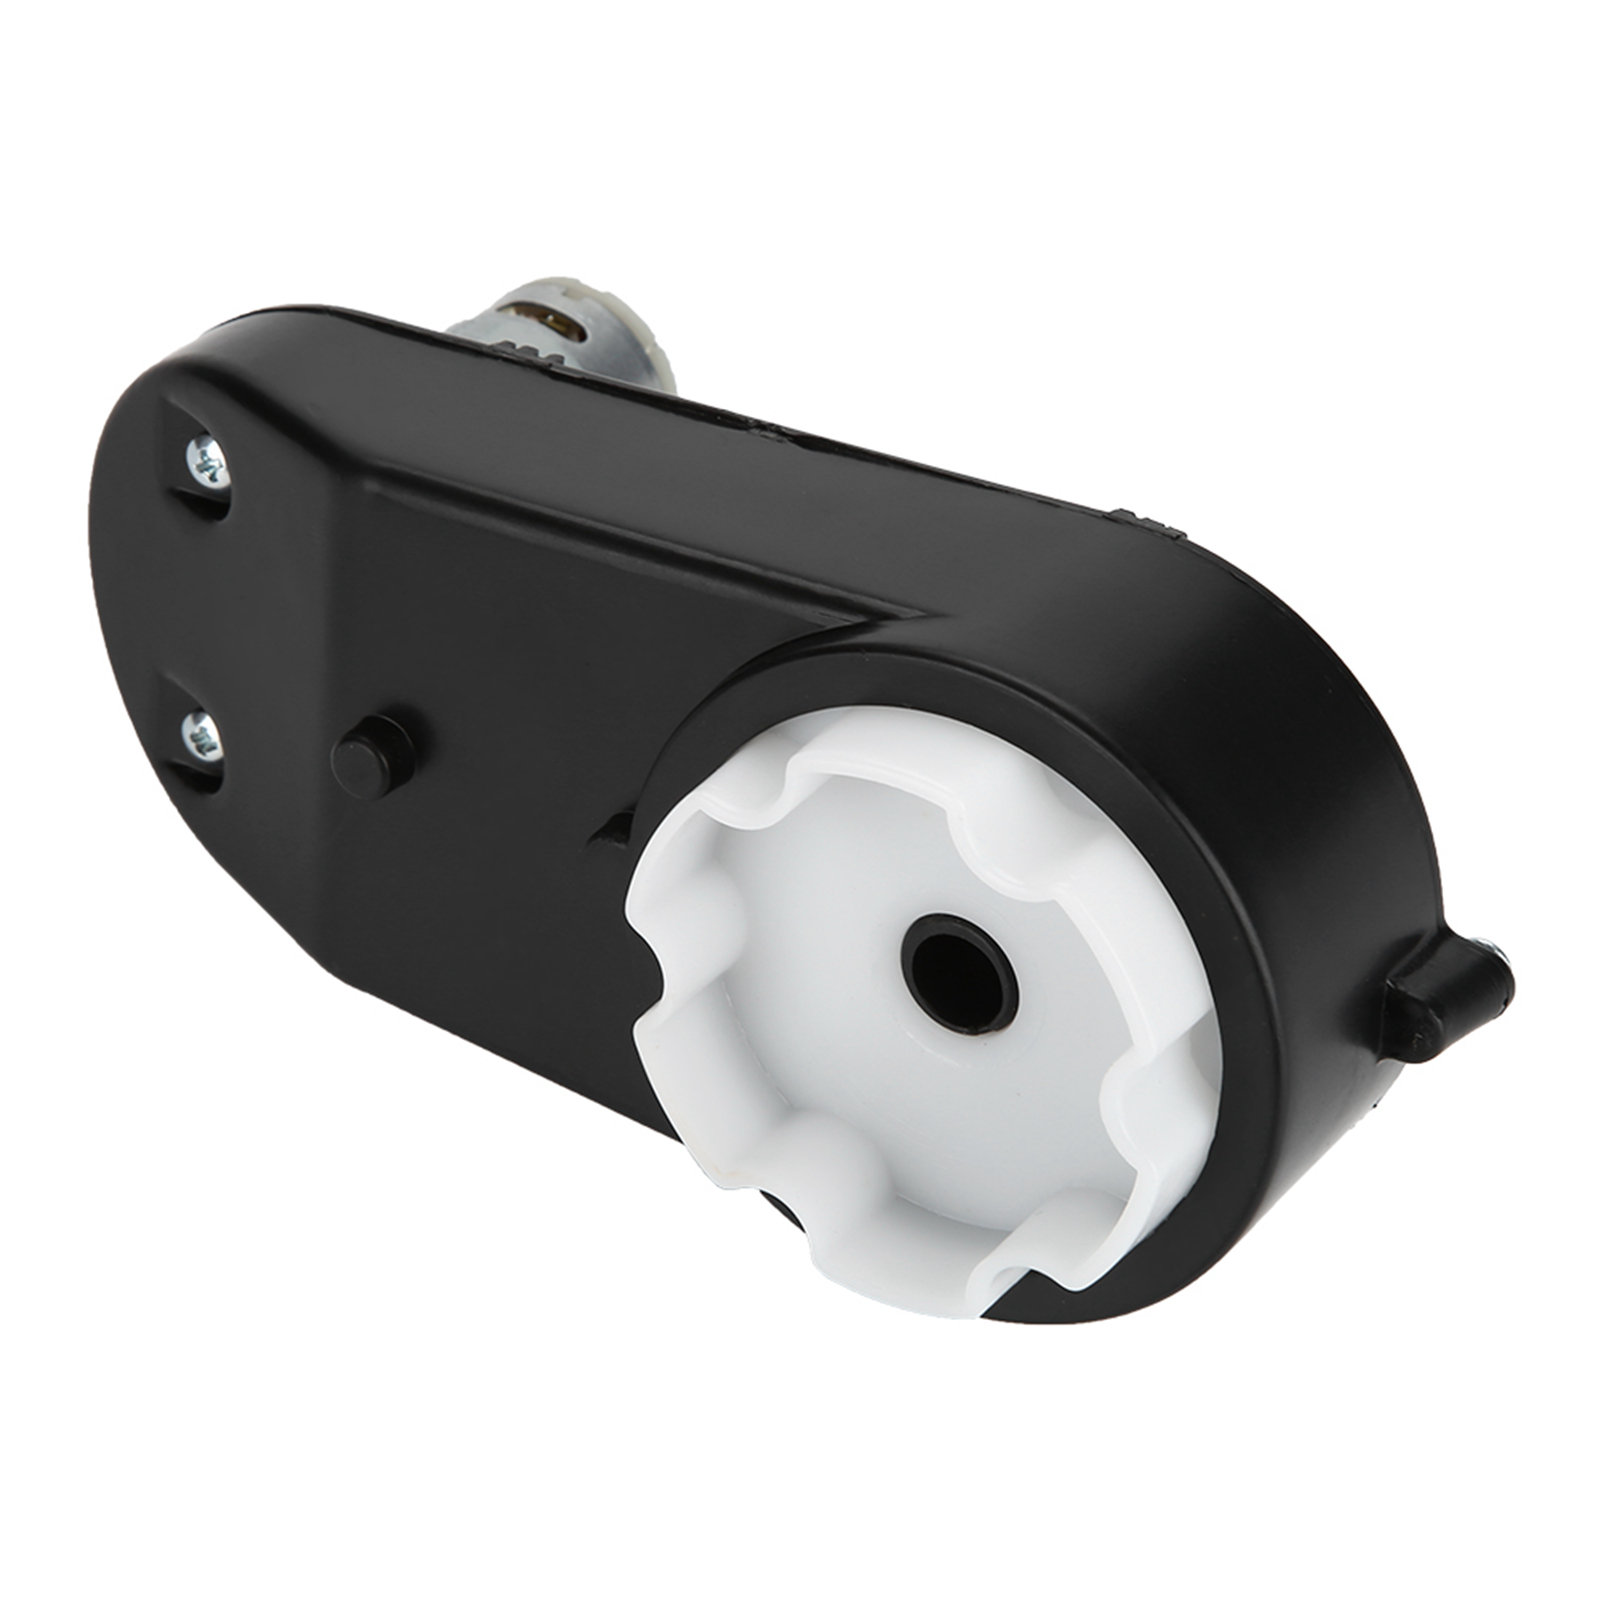 12V-Electric-Motor-Gear-Box-8000-30000RPM-For-Kids-Ride-On-Car-Bike-Toy-Parts thumbnail 23